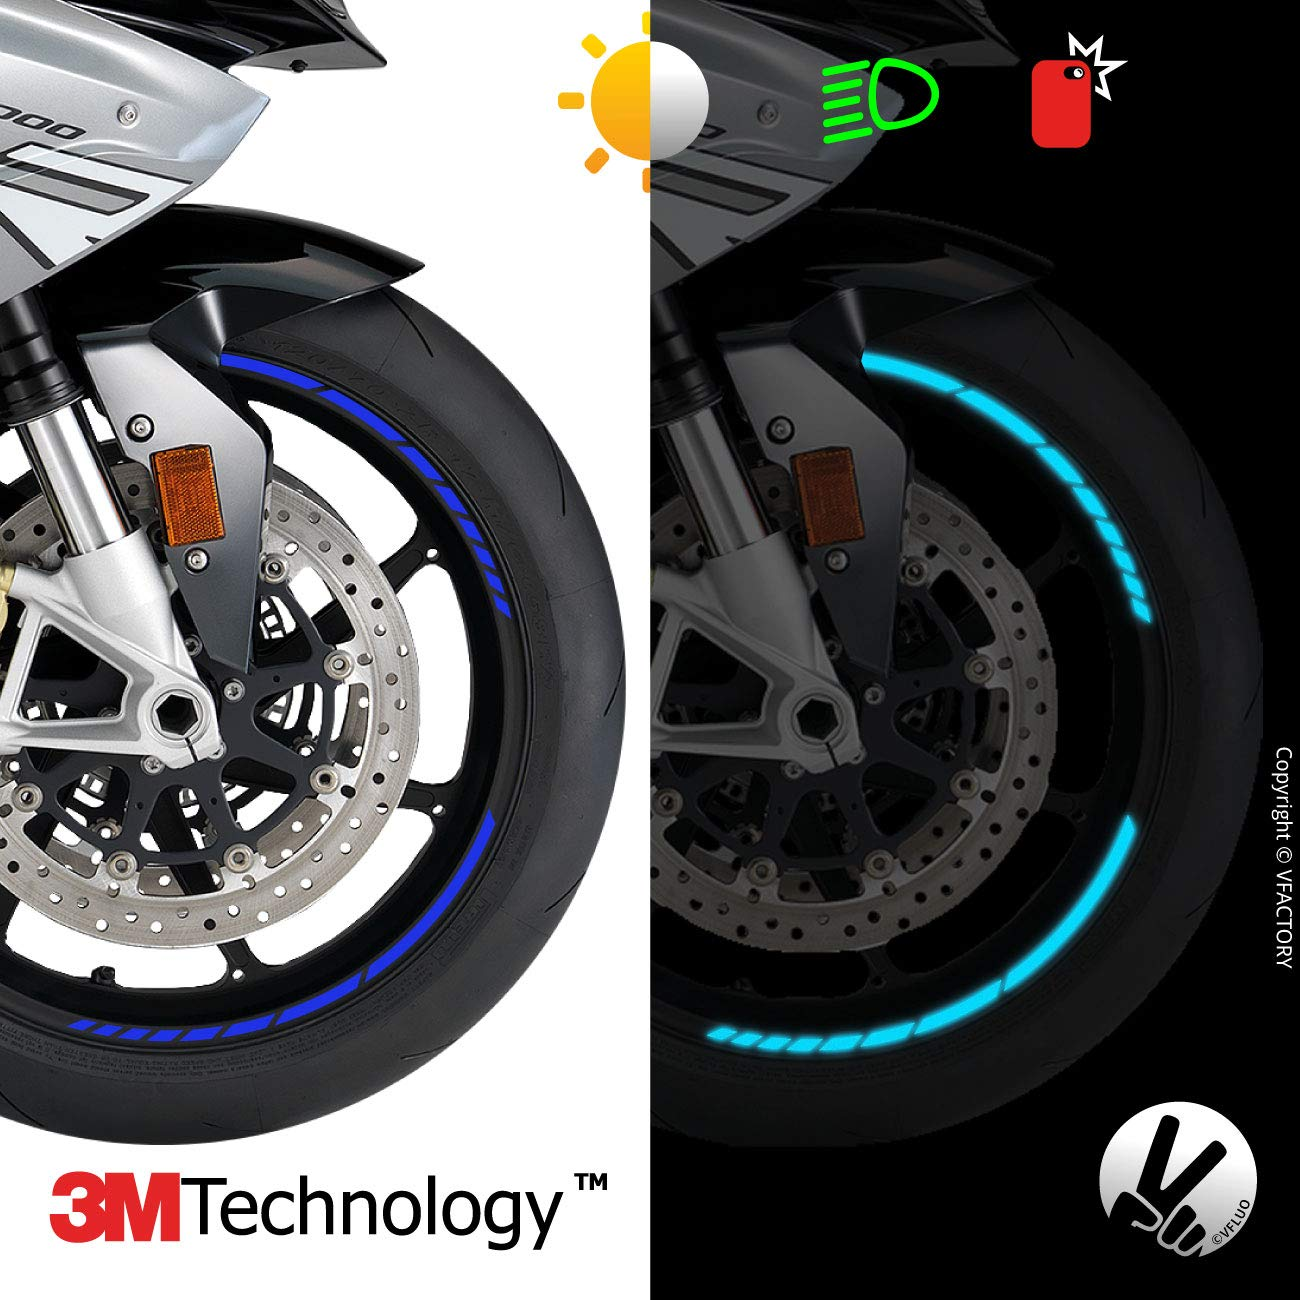 3M Technology/™ Anchura XL : 10 mm Rayas Retro Reflectantes para Llantas de Moto VFLUO GP Design/™ 1 Rueda Kit de Cintas Azul